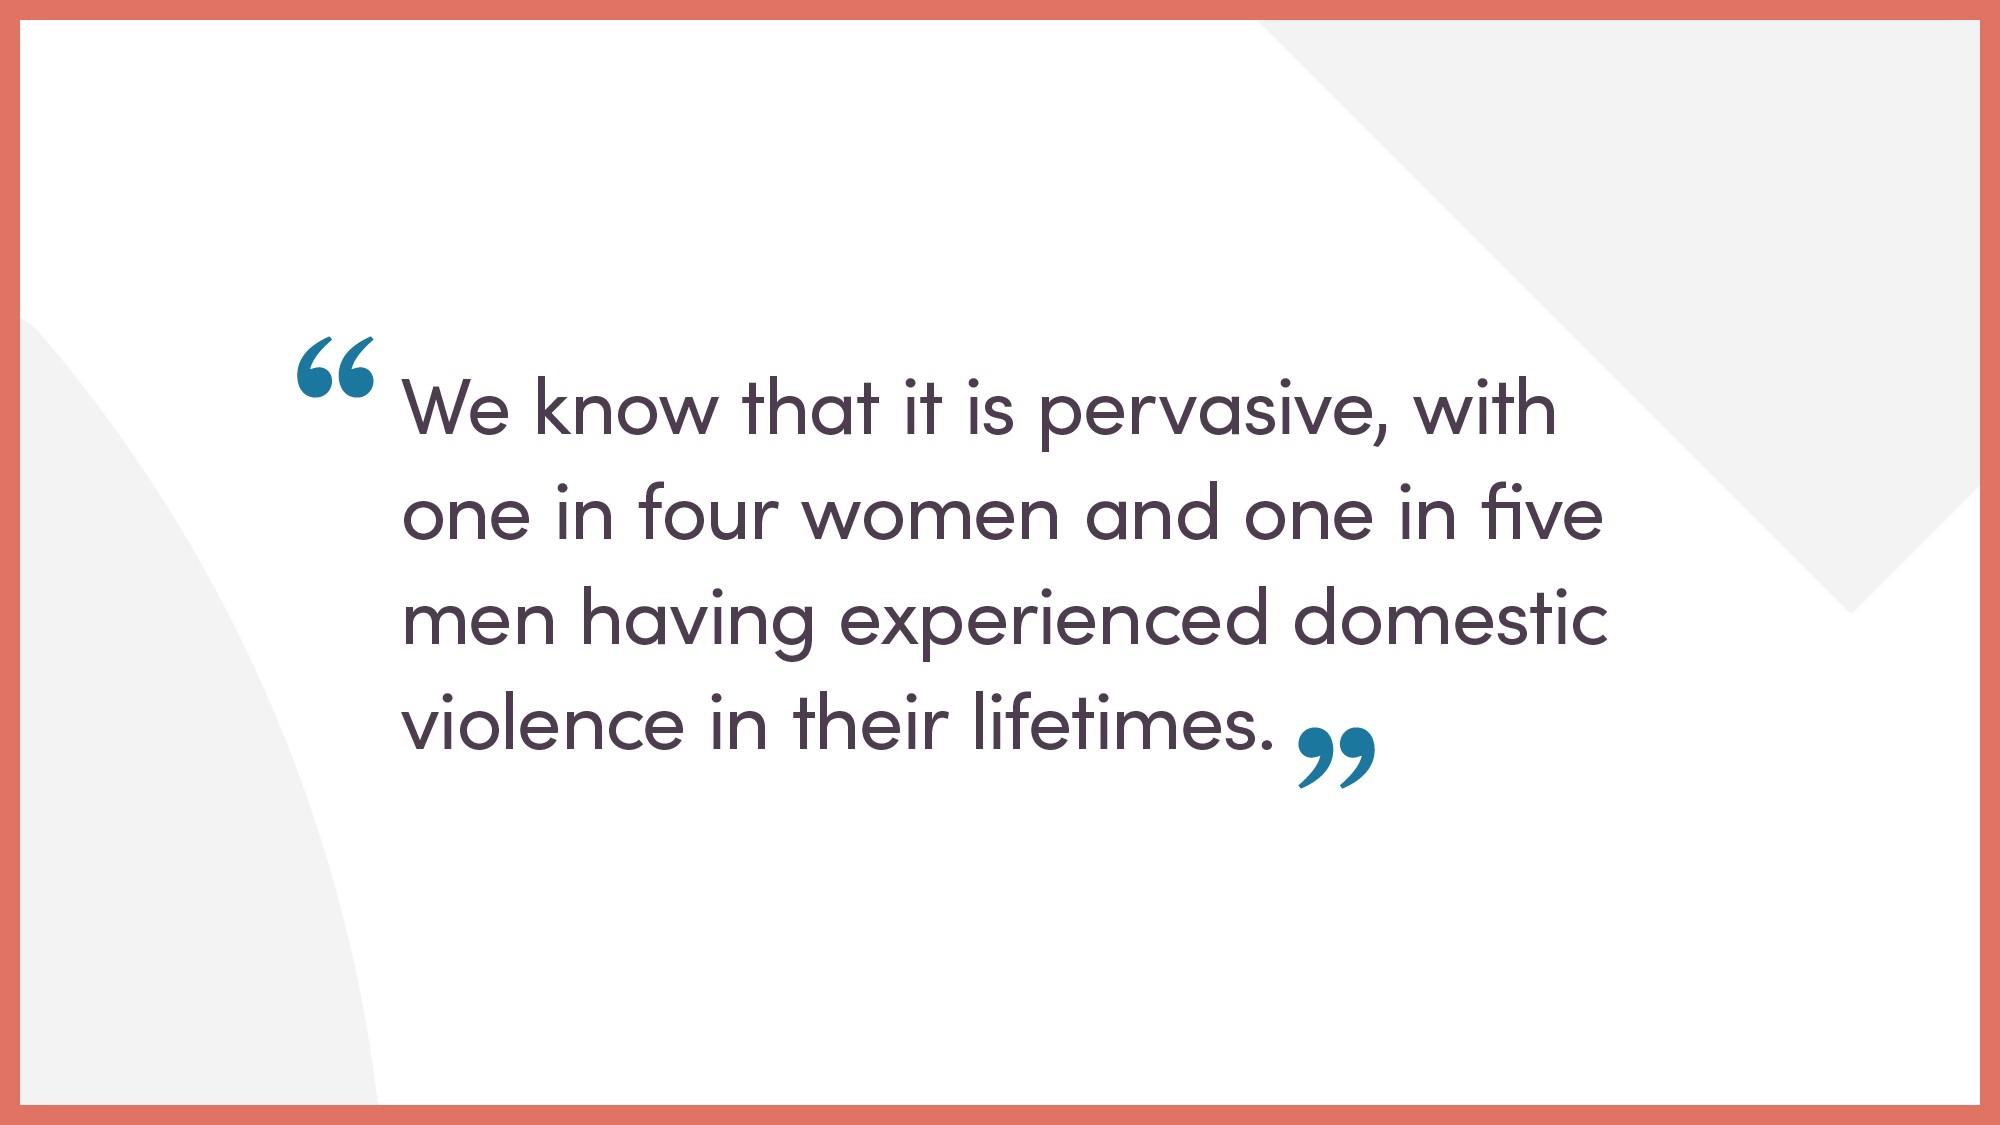 We know it is pervasive, with one in four women and one in five men having experienced domestic violence in their lifetime